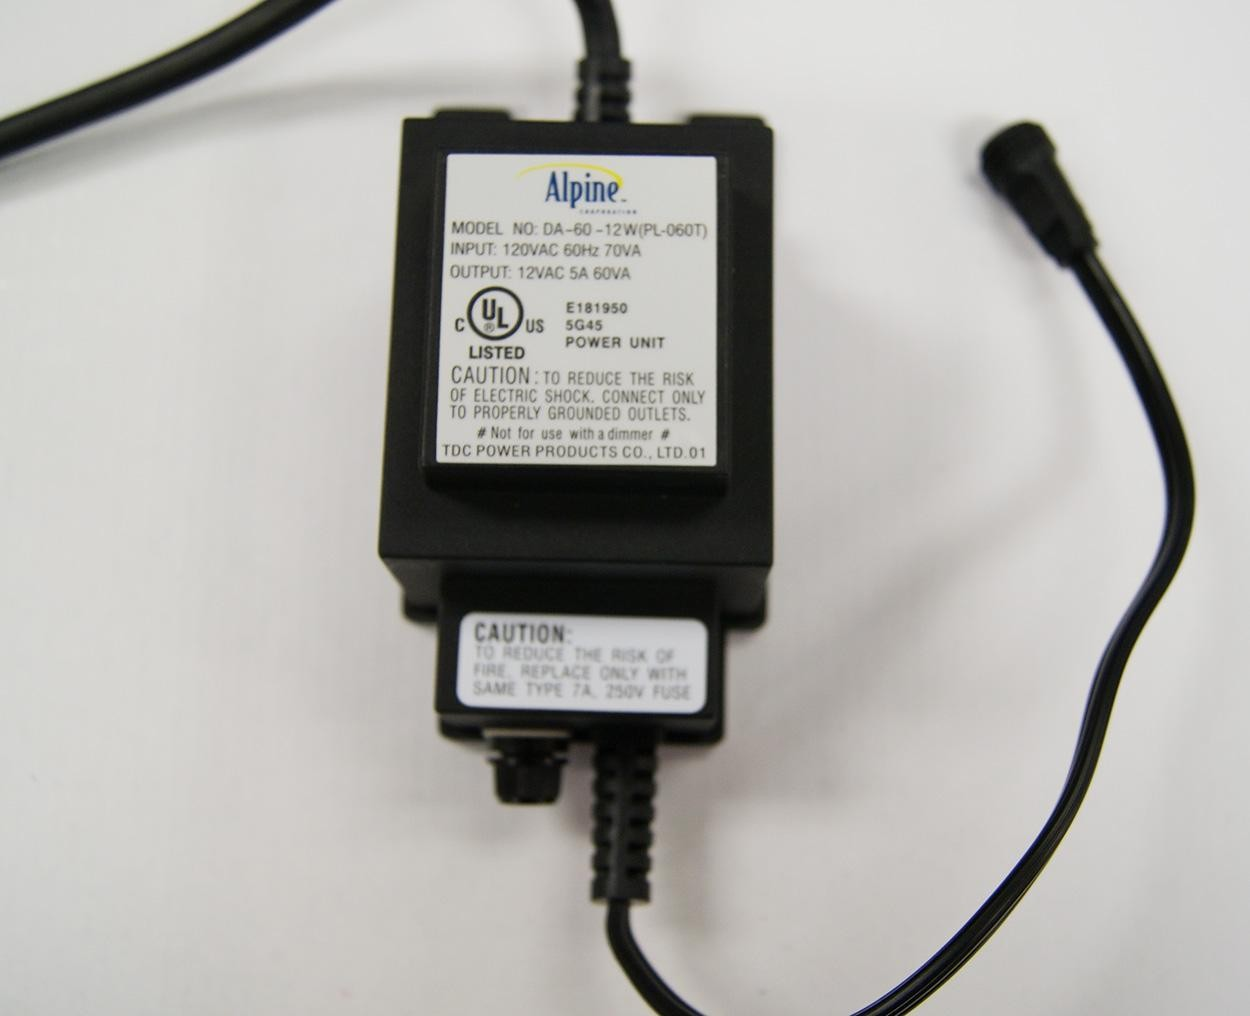 Alpine 60 Watt Multi-Light Transformer